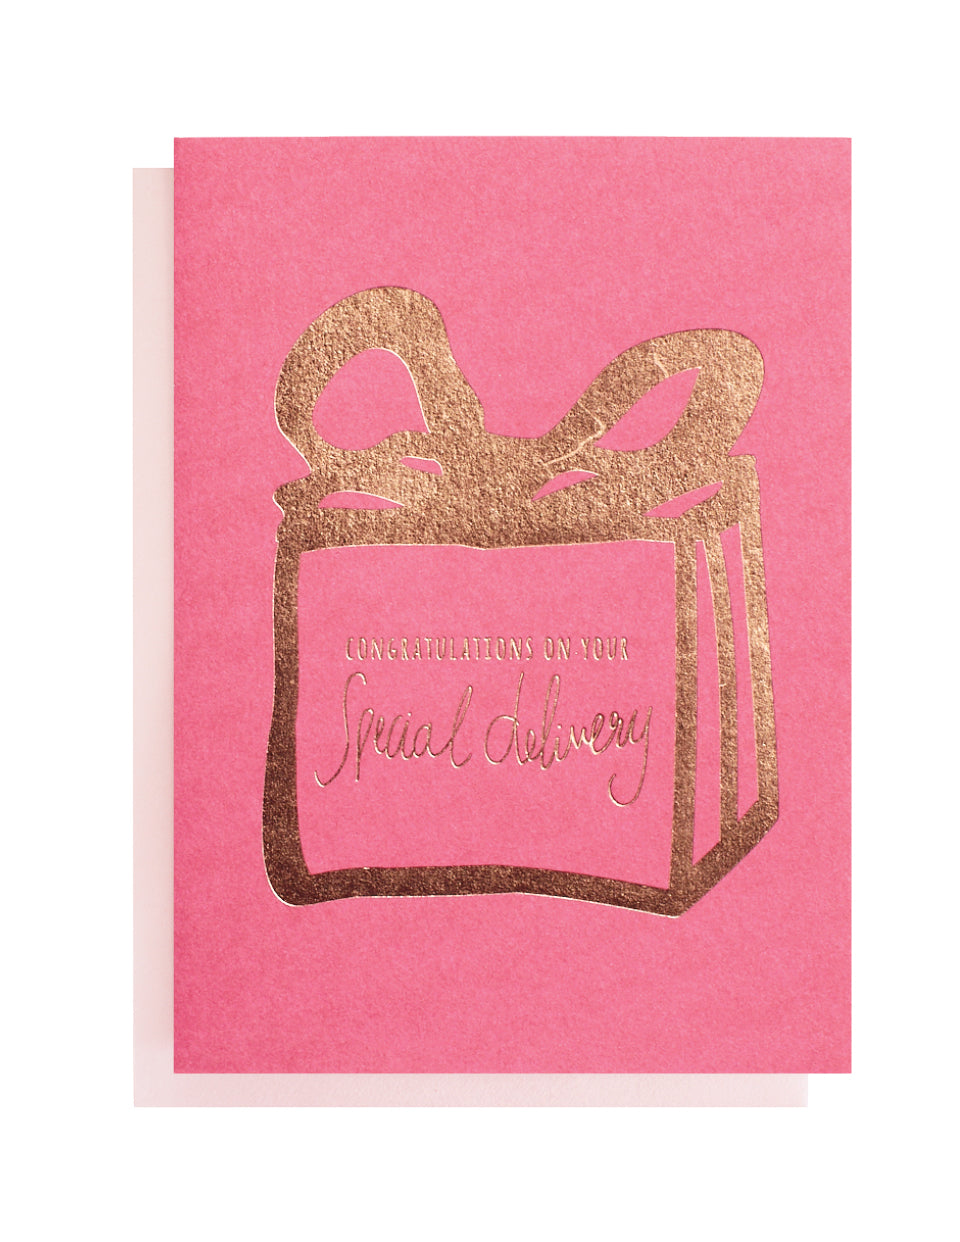 Special Delivery Foiled Greeting Card Blushing Confetti